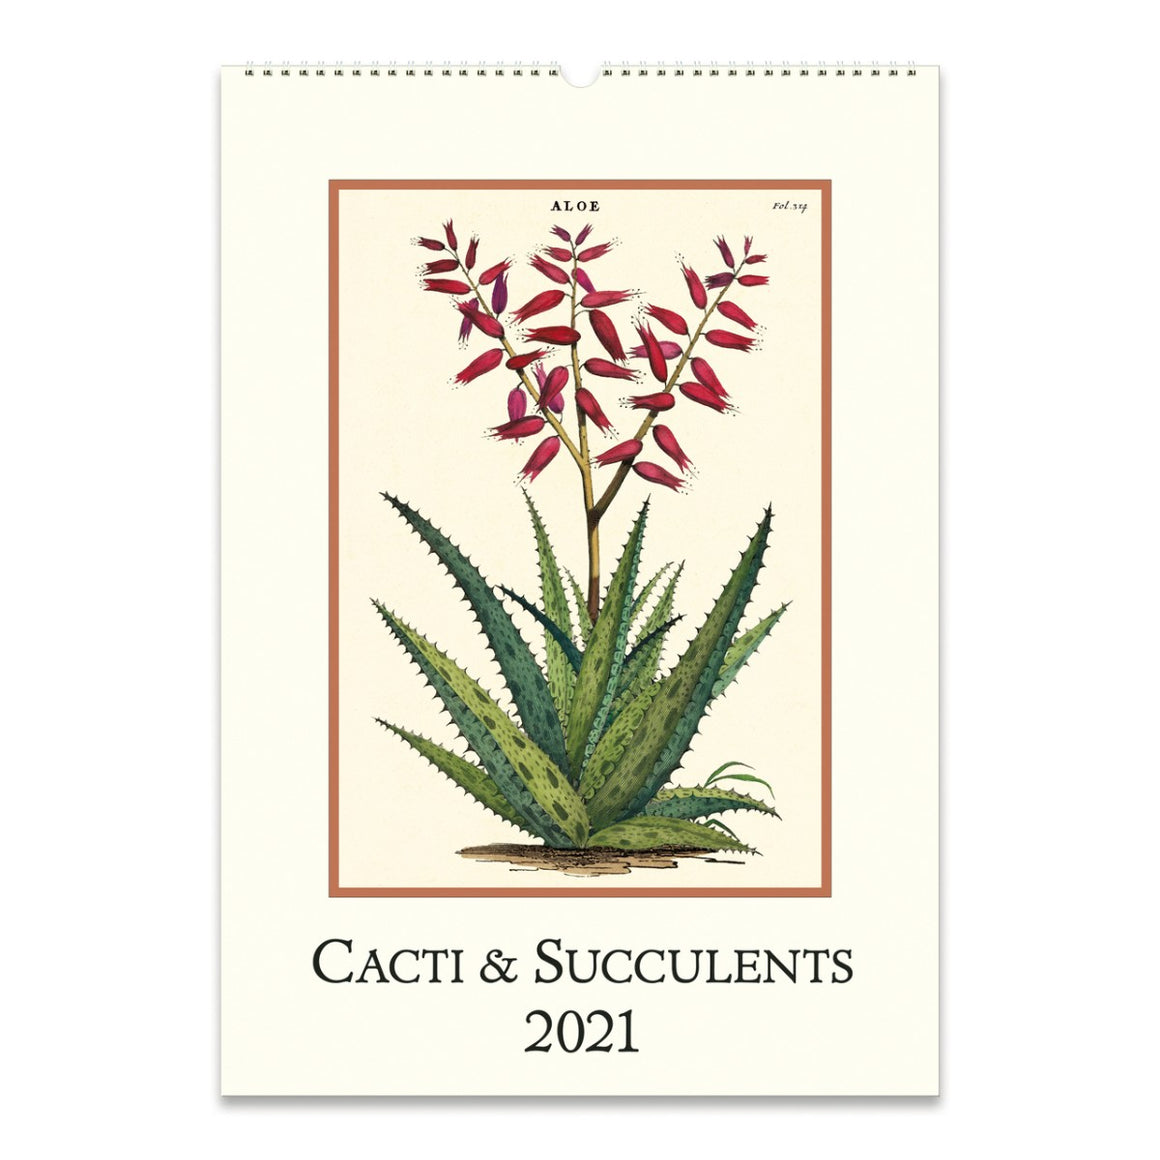 A 2021 Wall calendar featuring a vintage succulent image in bold colours.